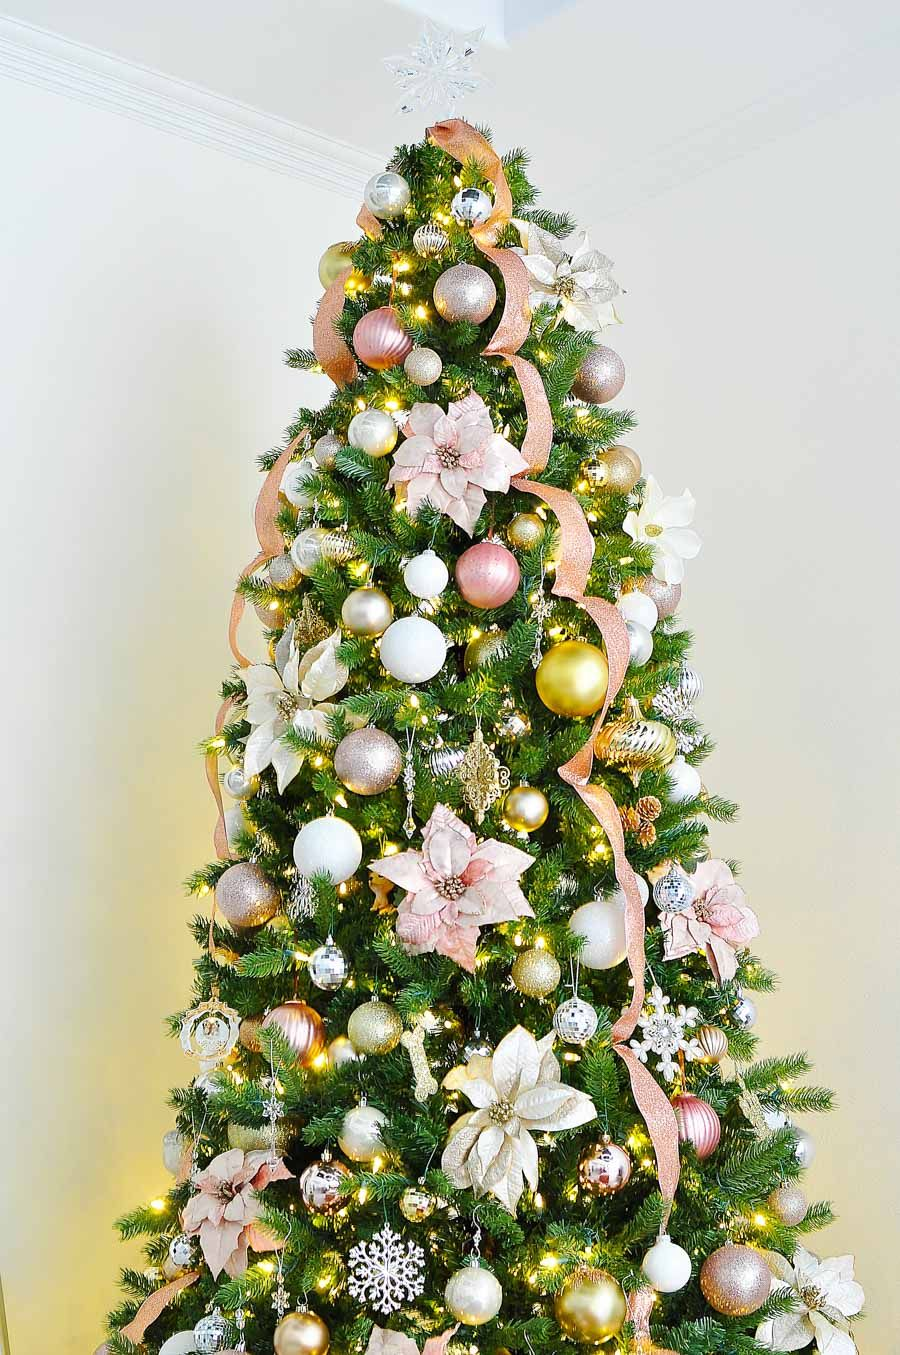 My Home Style Christmas Tree 2017 Ribbon On Christmas Tree Pink